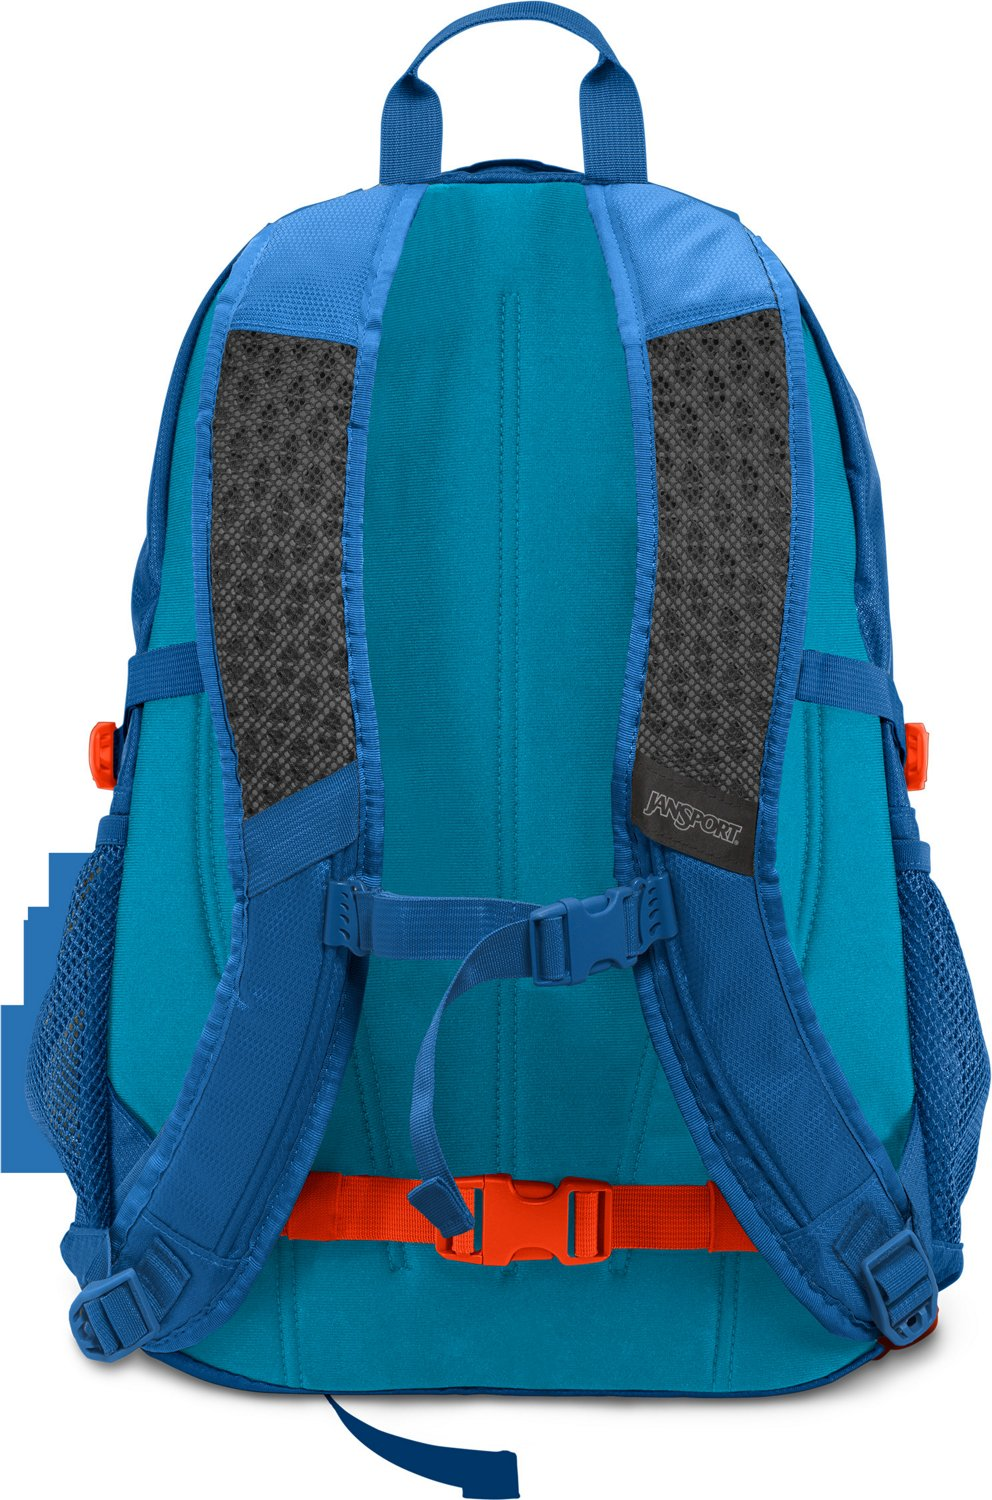 JanSport Agave Backpack - view number 1